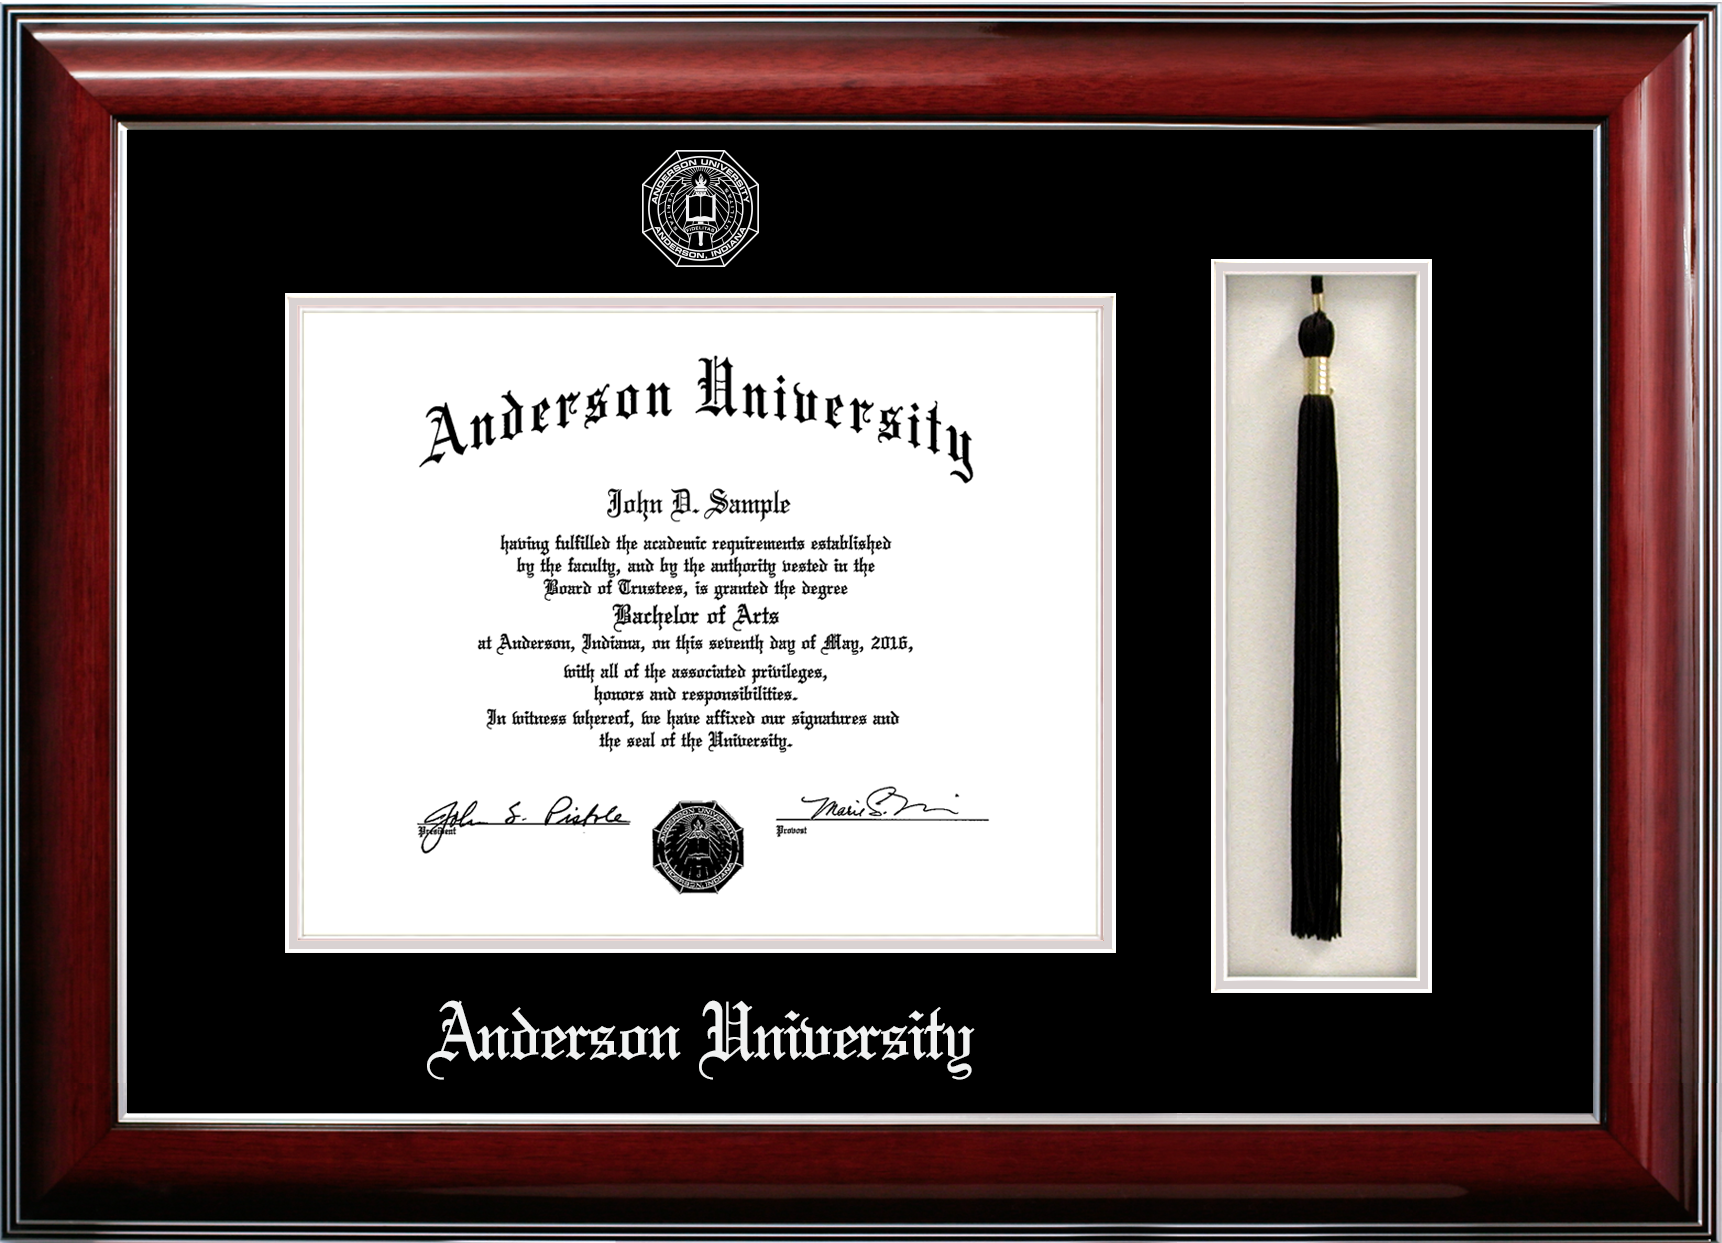 Anderson University Diploma Frame With Tassel Diploma Frame Anderson University Graduation Frame